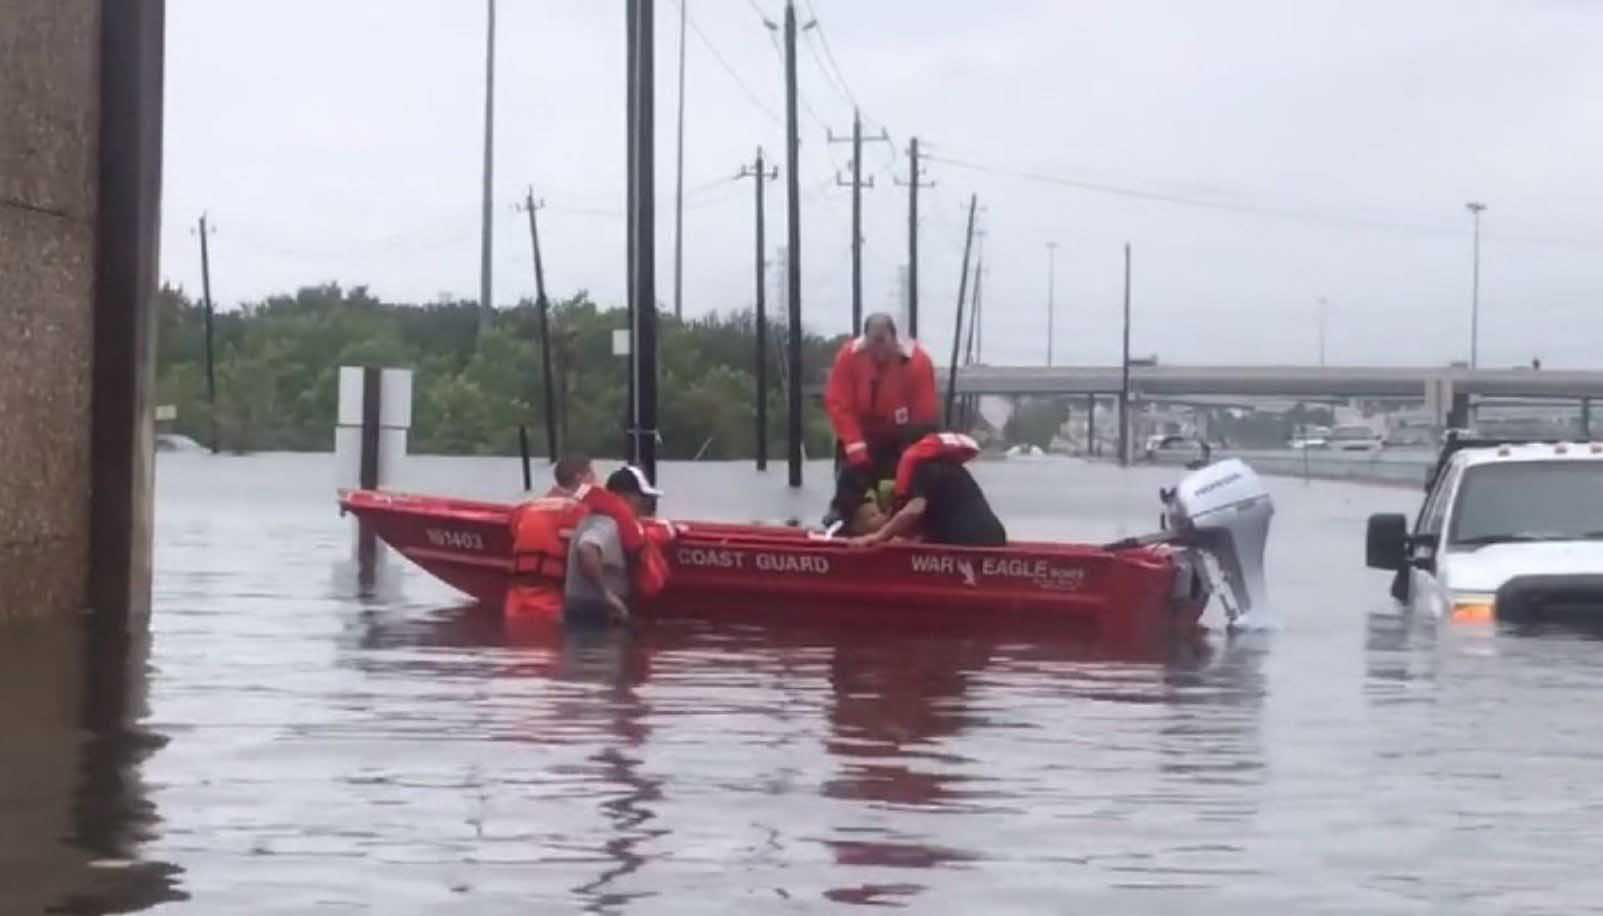 """The agency said last year's hurricane season """"stretched response capabilities at all levels of government."""" (Source: U.S. Coast Guard via CNN)"""